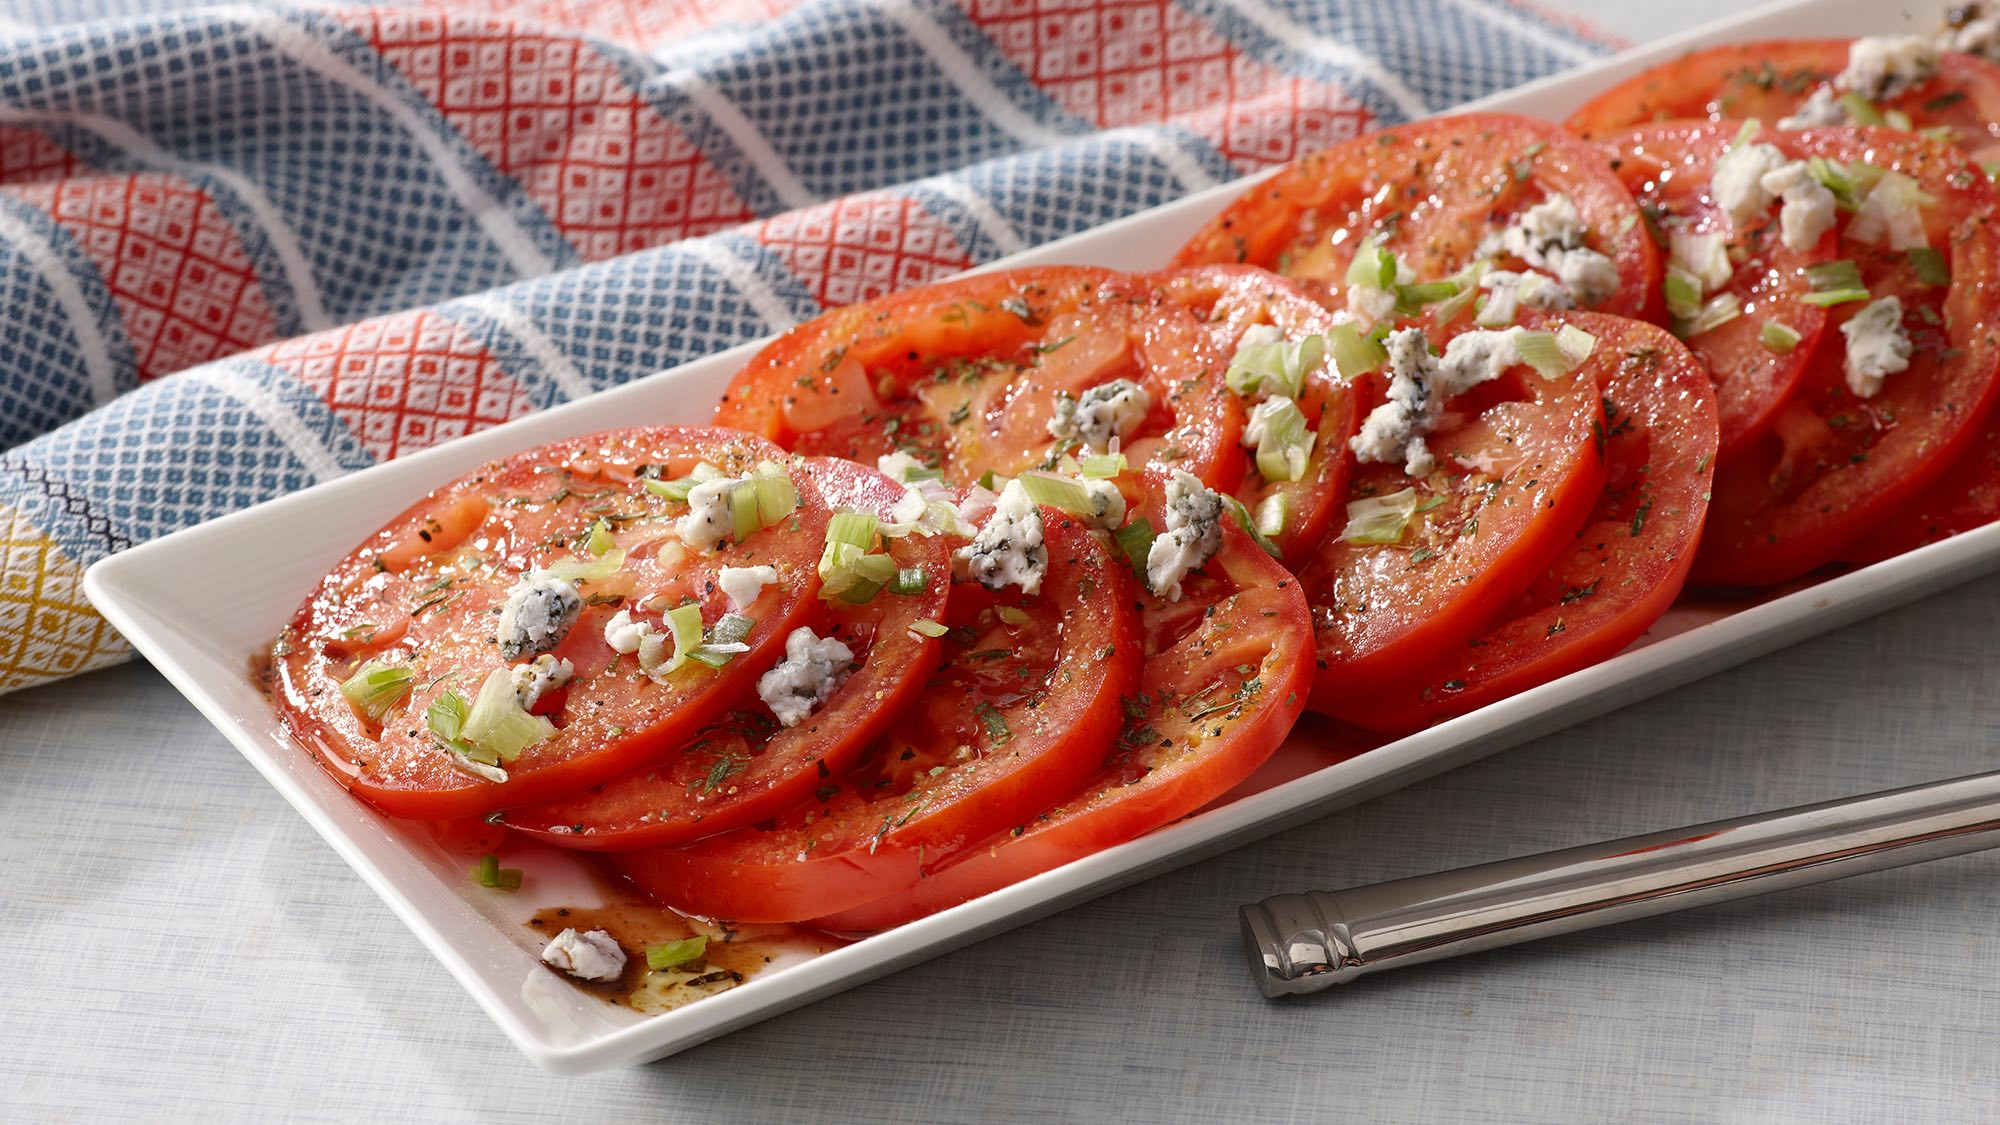 tomato-slices-with-blue-cheese-and-balsamic-vinegar.jpg